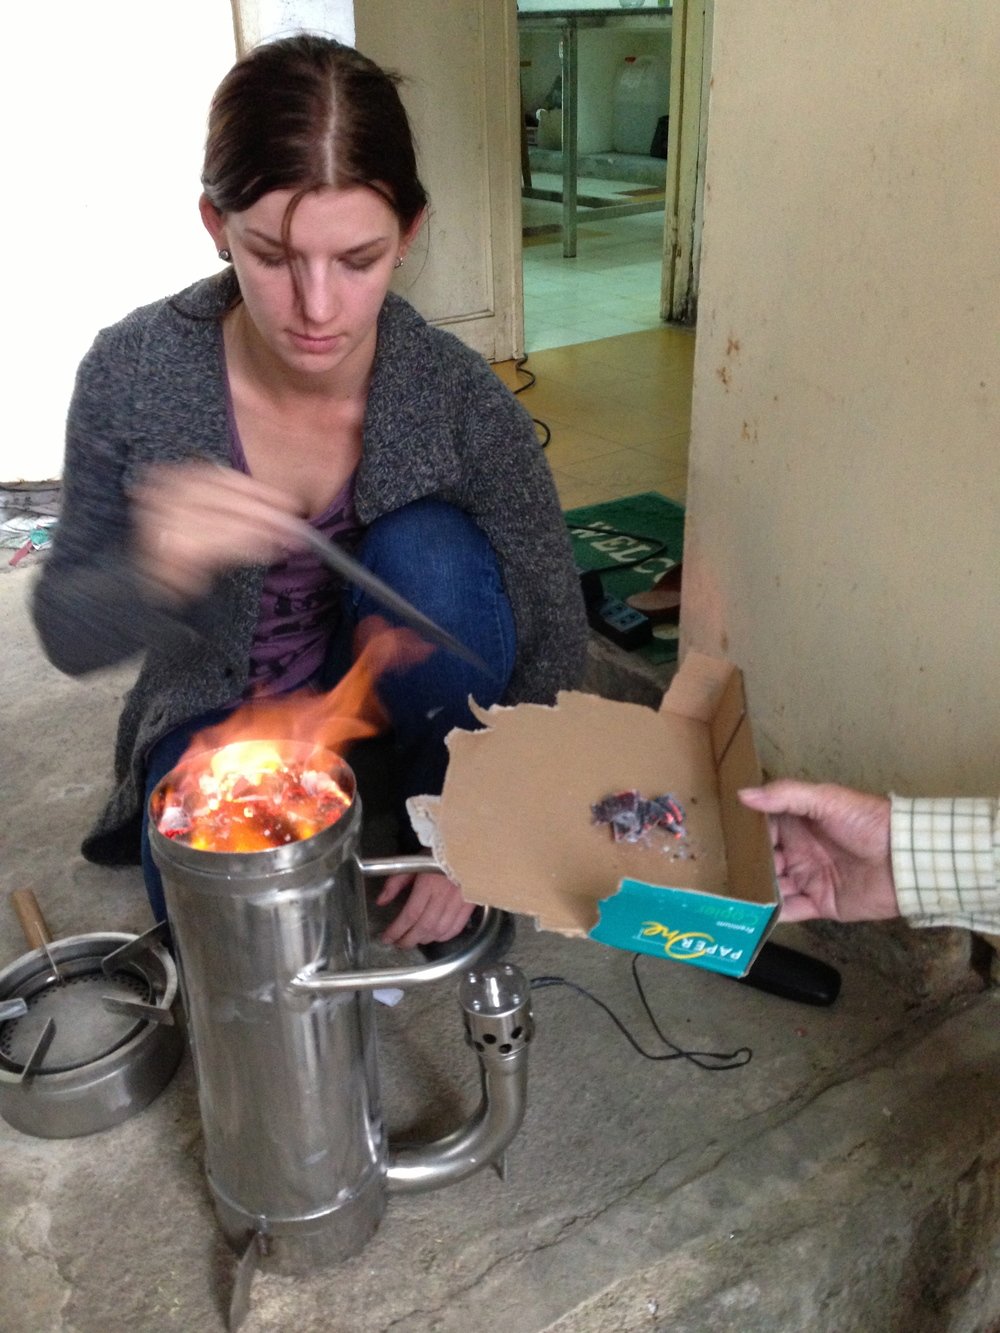 Cana Little, of fi-lan-thro-pe, will demonstrate these in remote farming communities. Once the top layer is alight, remove charred cardboard and place burner on top